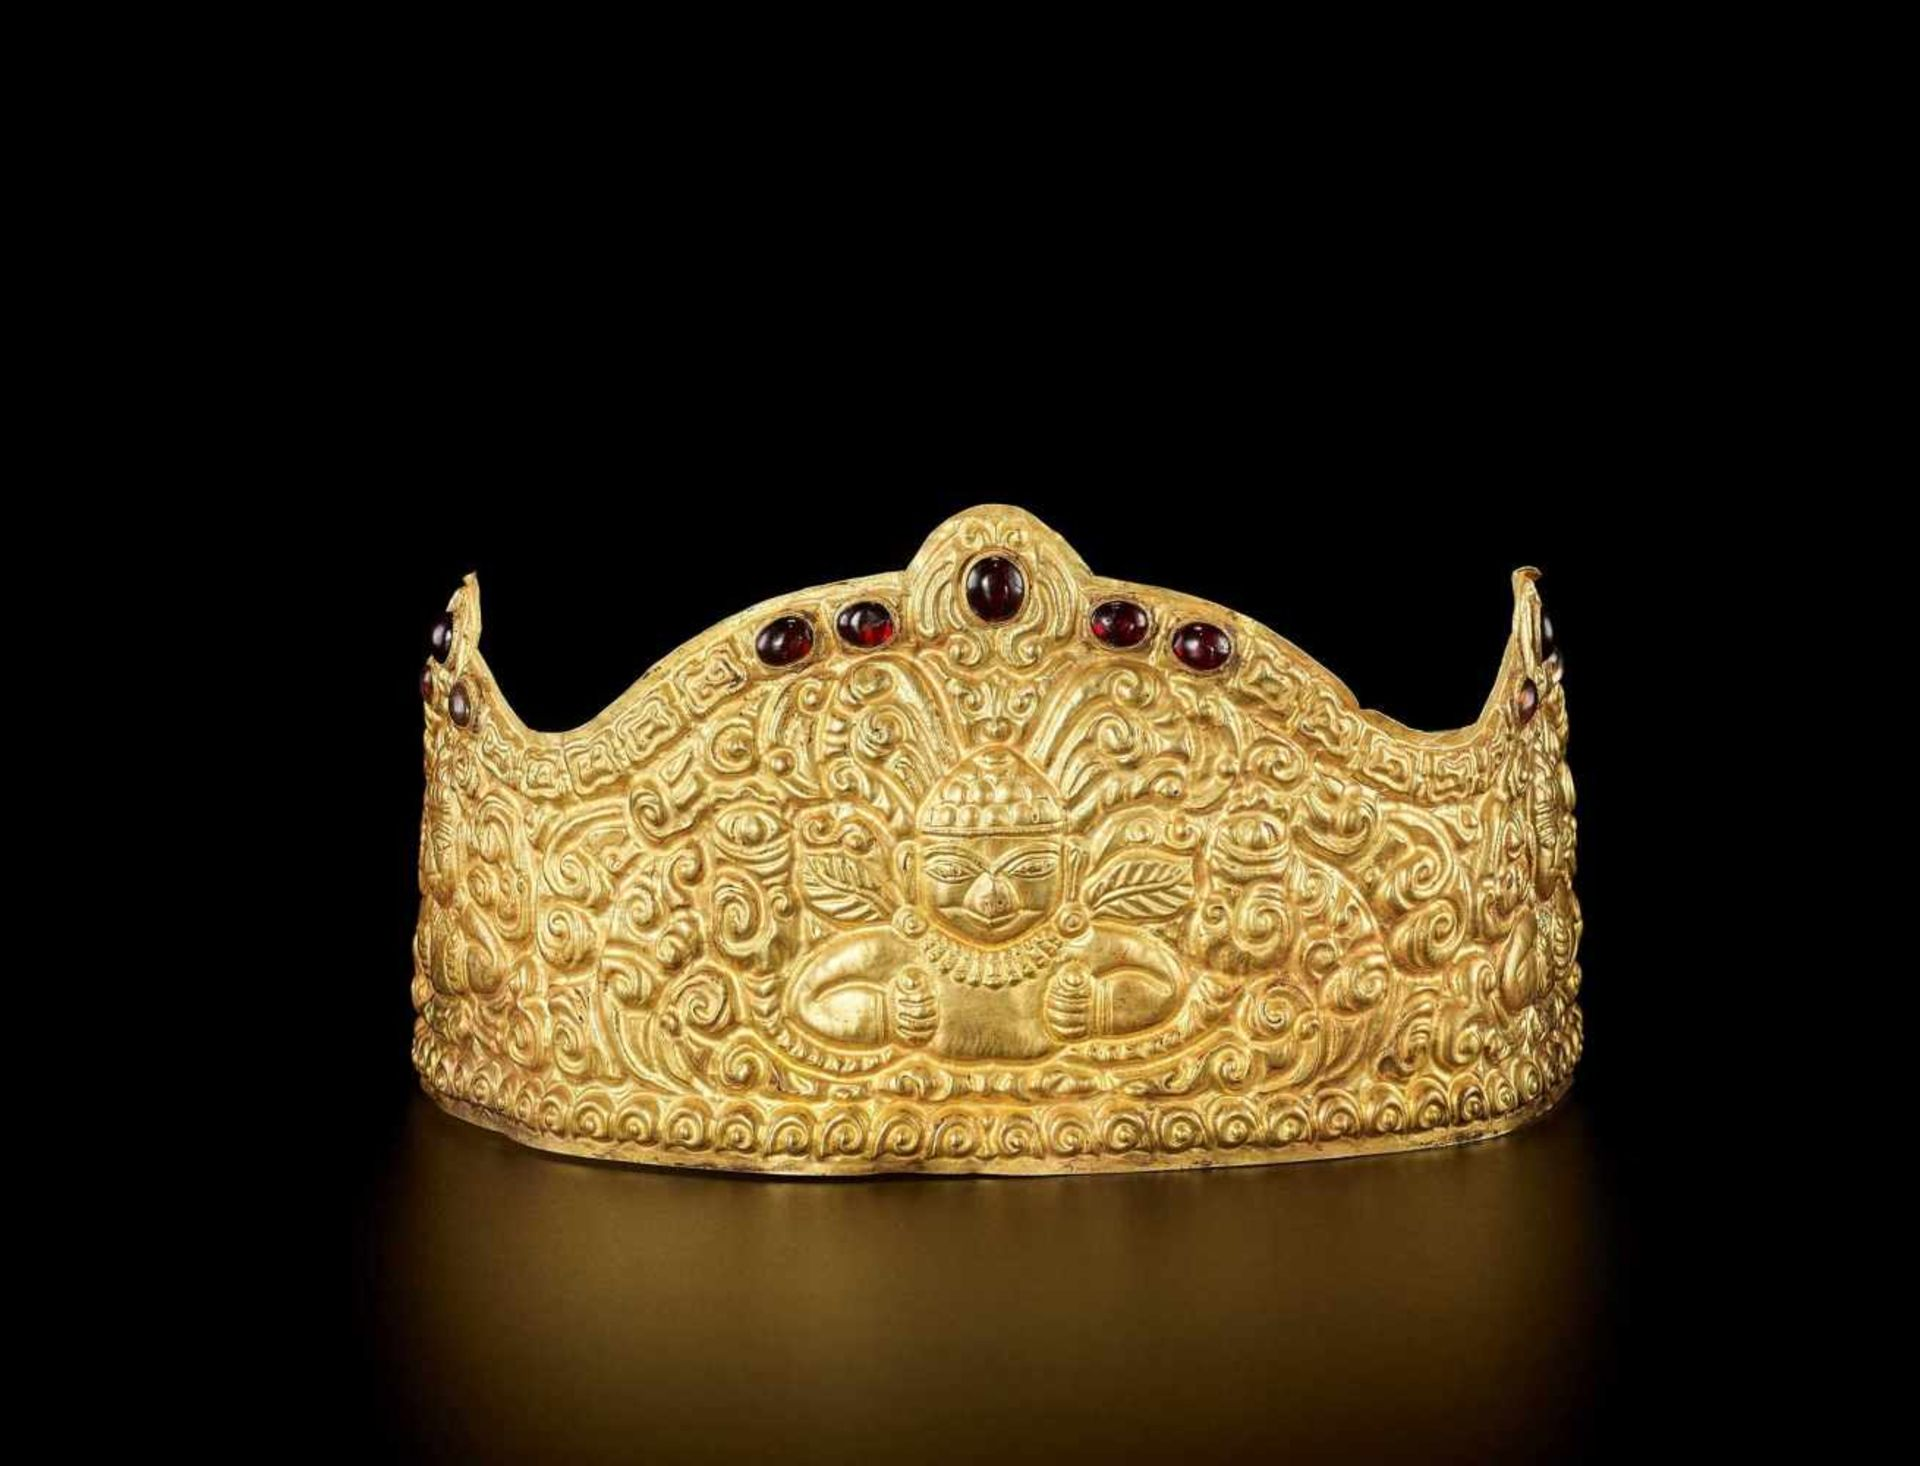 AN EXTRE MELY RARE AND FINE CHAM GEMSTONE-SET GOLD REPOUSSÉ CROWN WITH GARUDAS